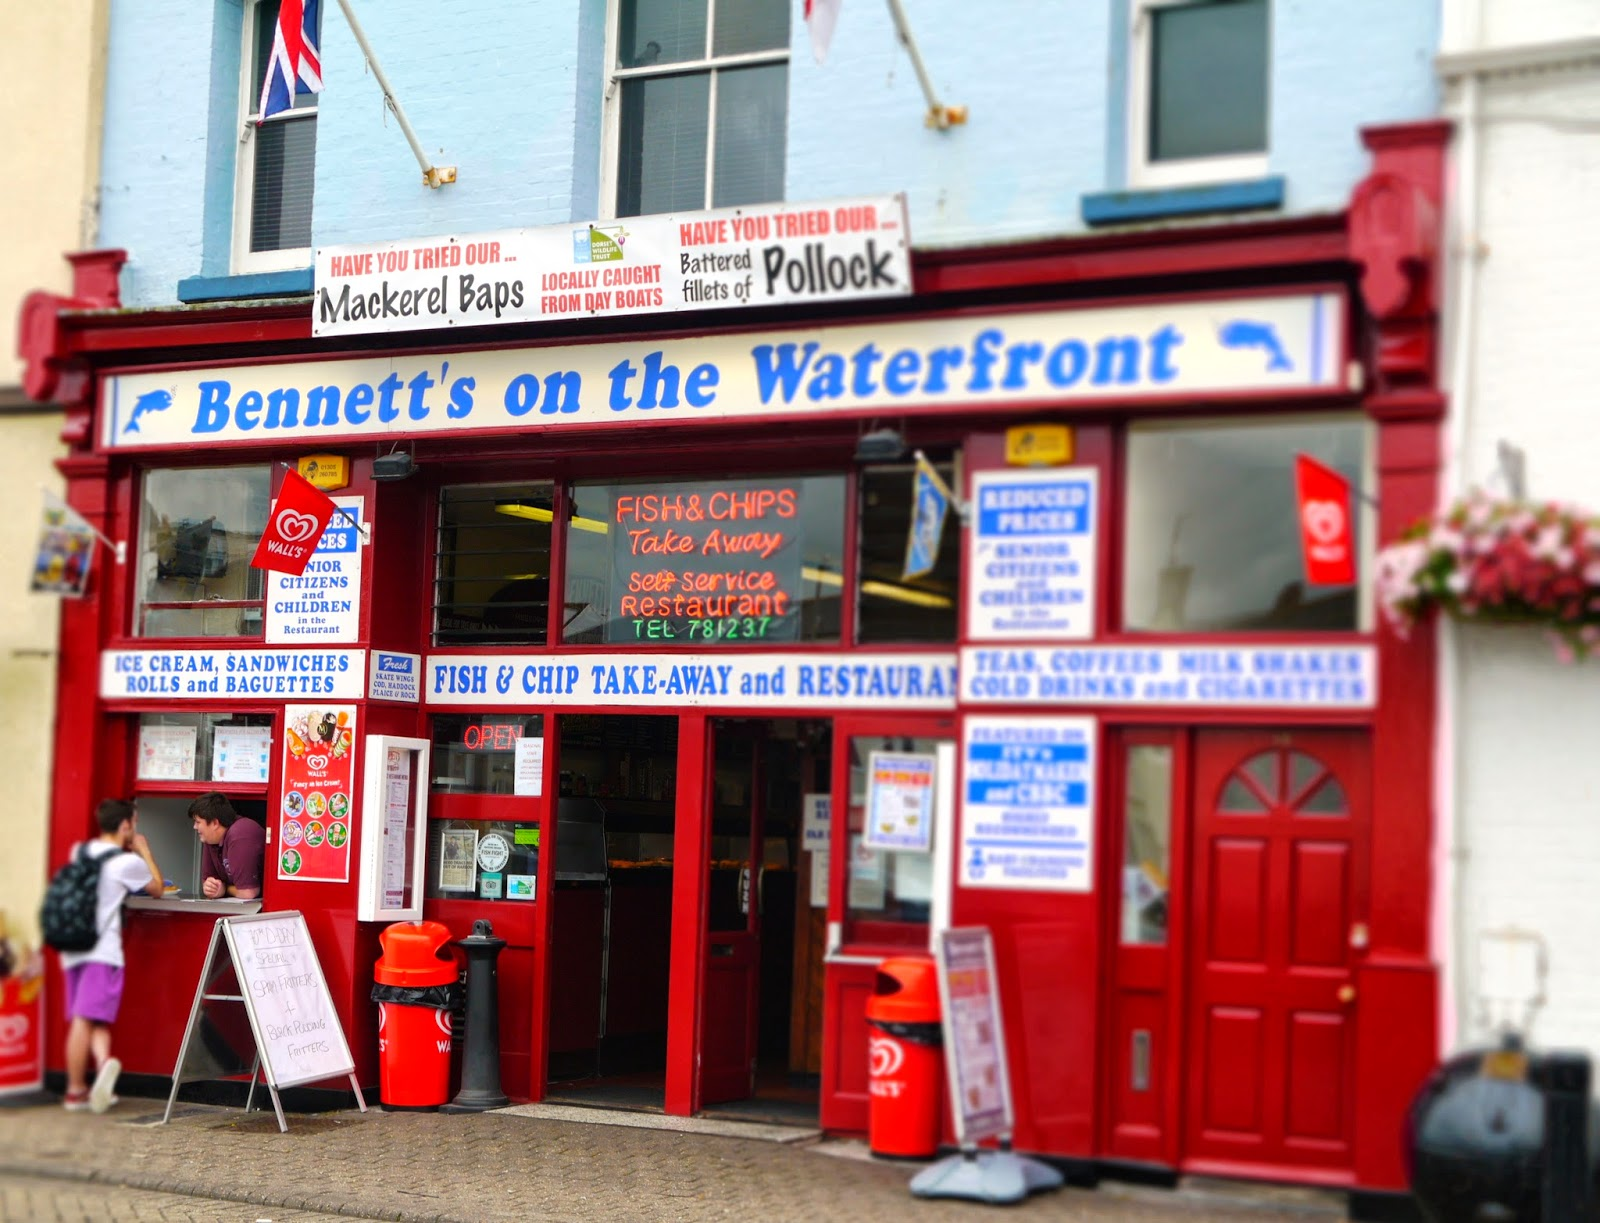 Weymouth Bennett's on the Waterfront